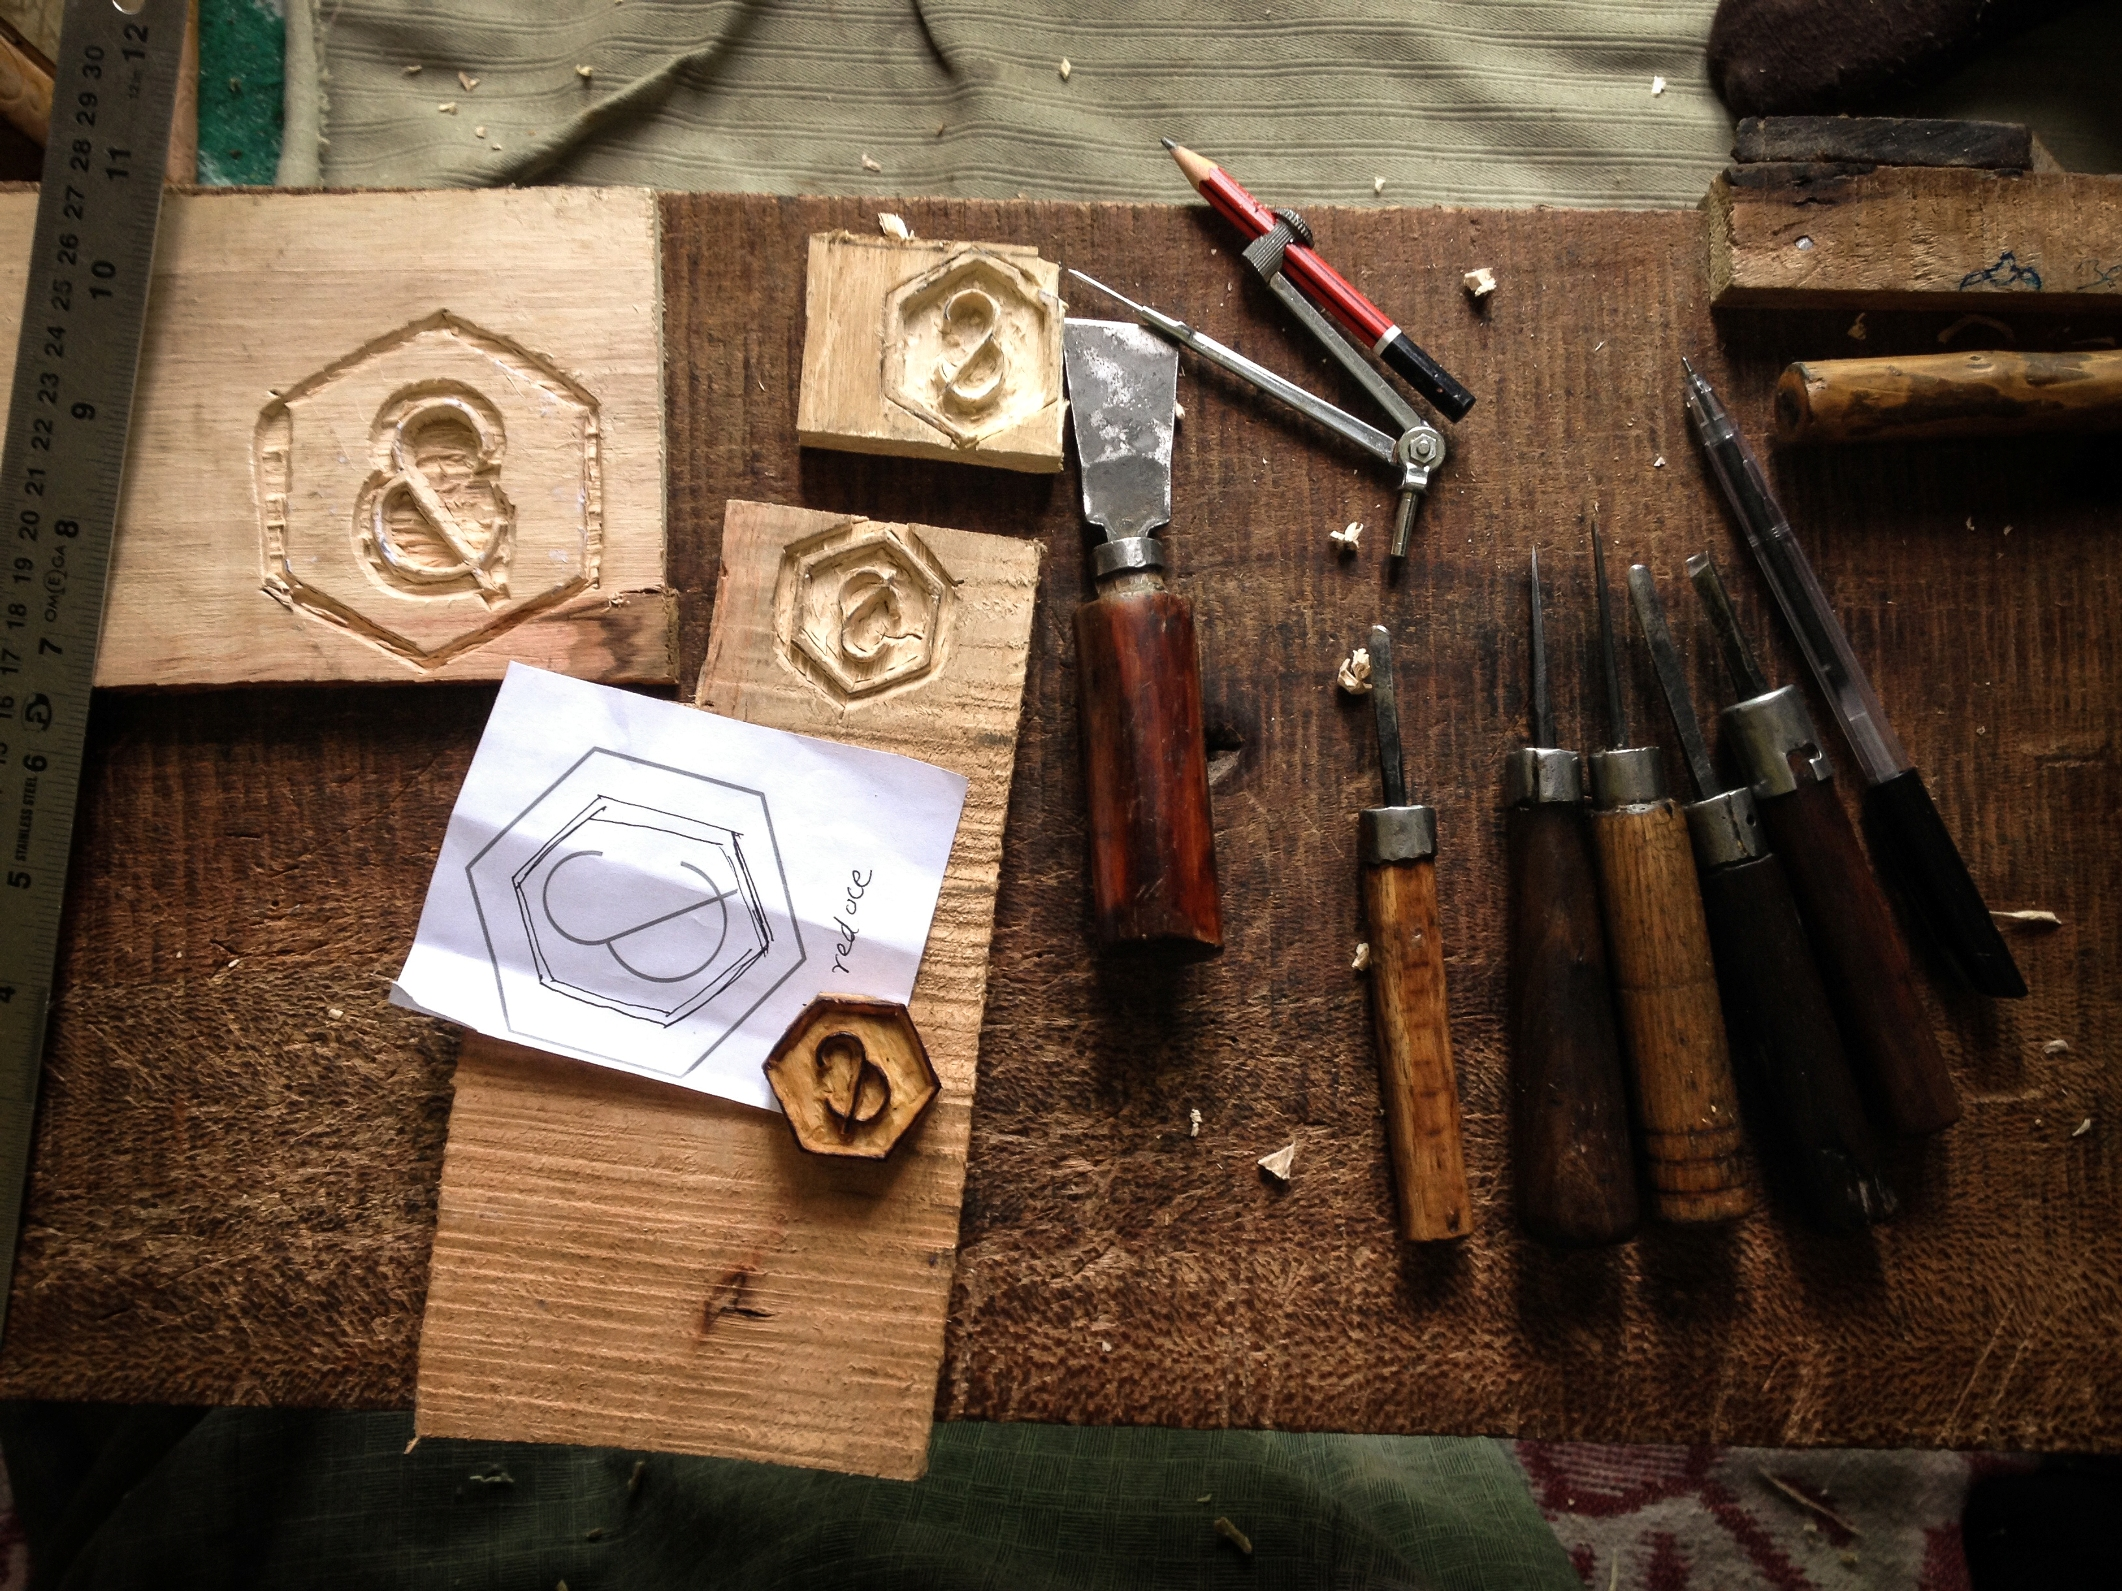 Jos&fine's logo being carved in wood